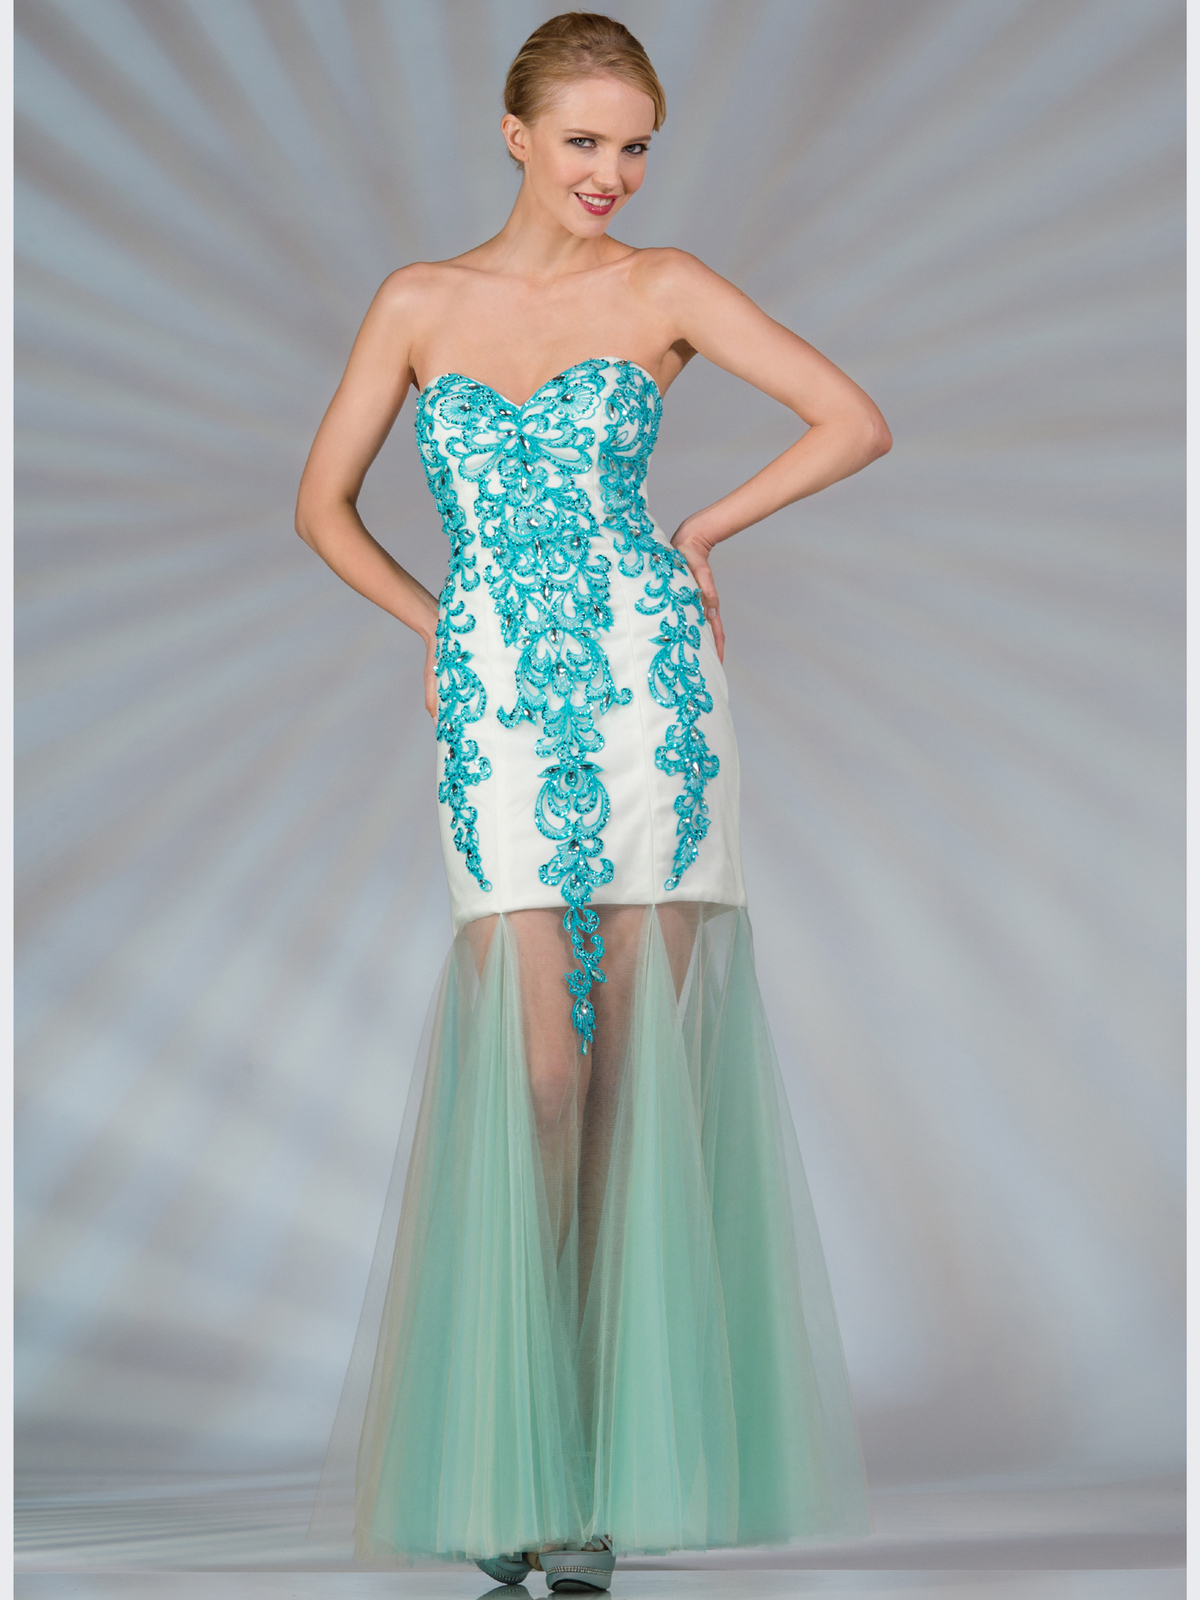 Vintage Prom Dress Shops | Cocktail Dresses 2016